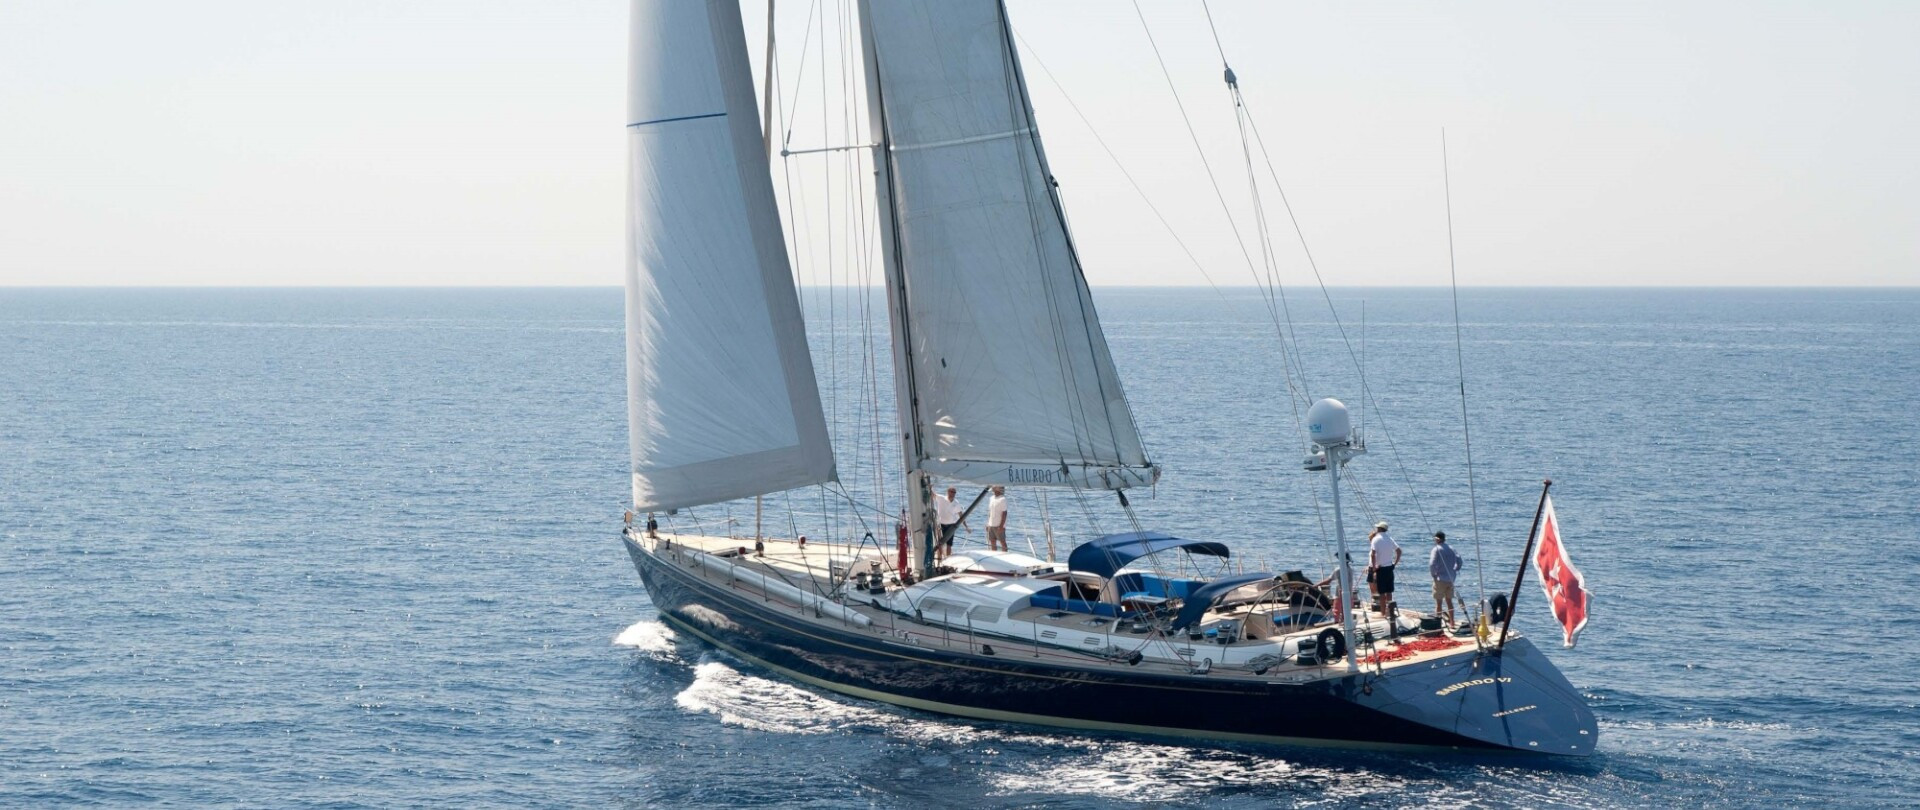 Baiurdo VI - Available for inspection during the 2019 Cannes Yachting Festival photo 1